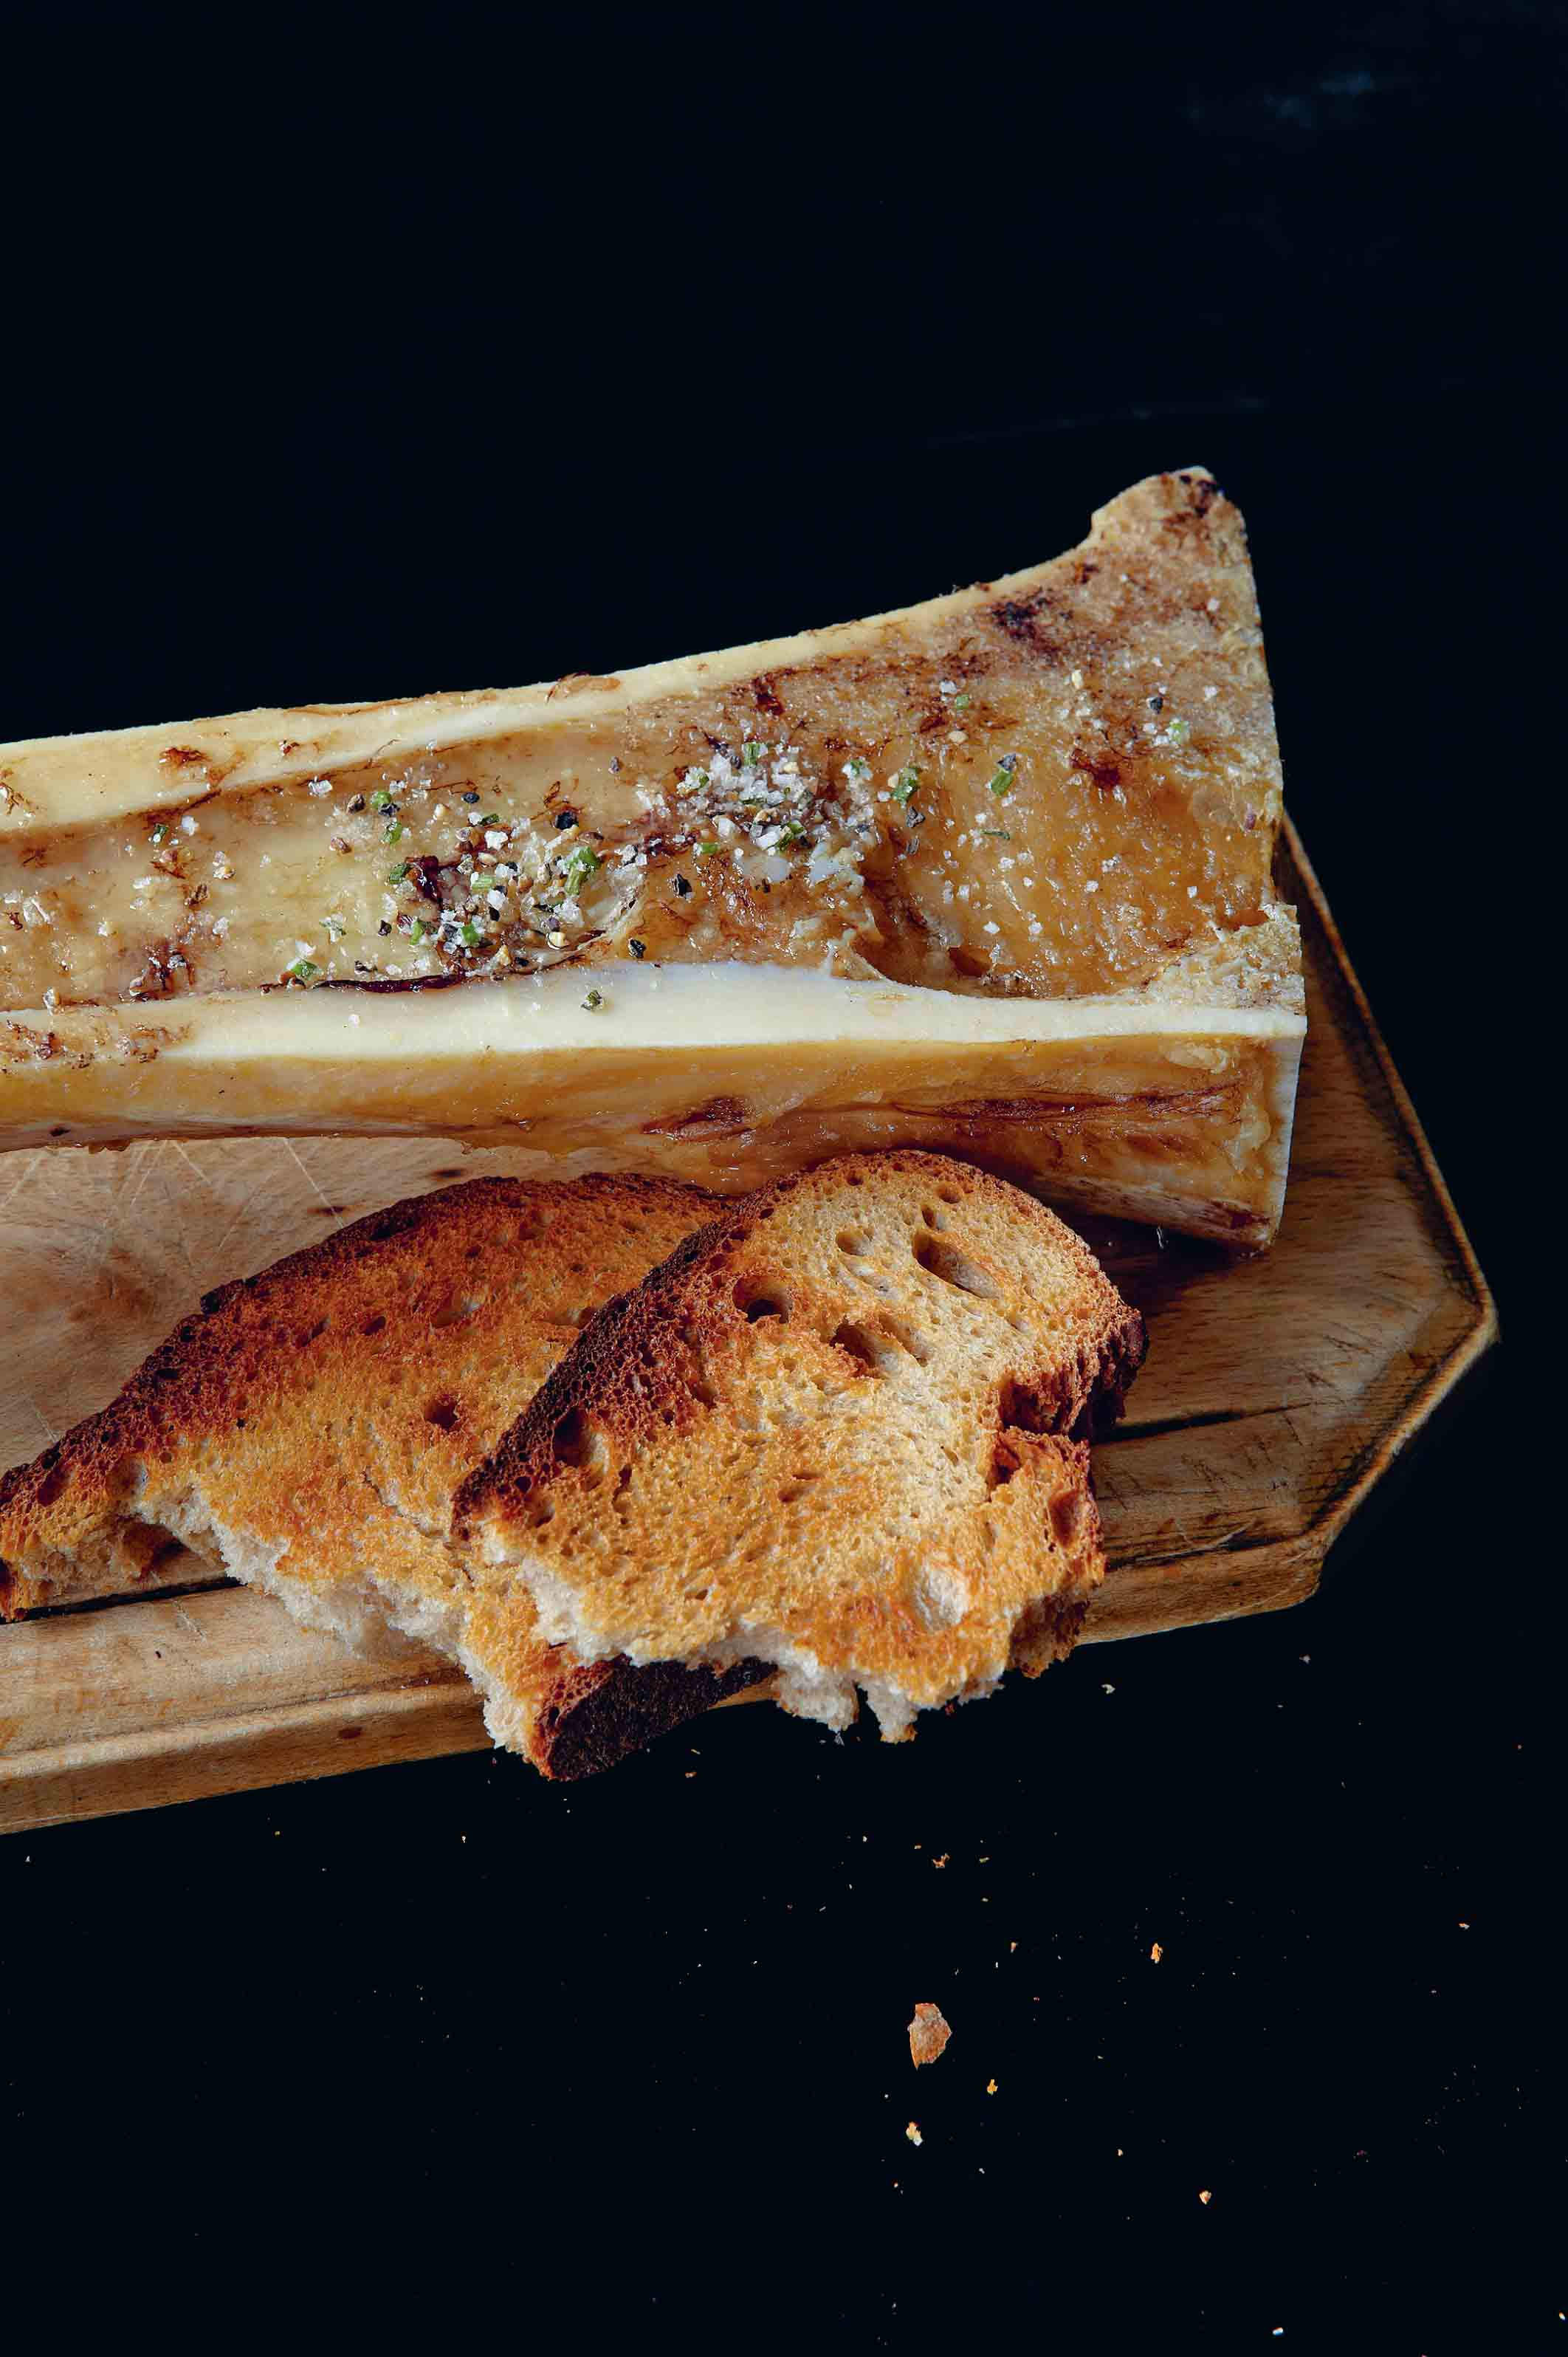 Grilled marrow bone